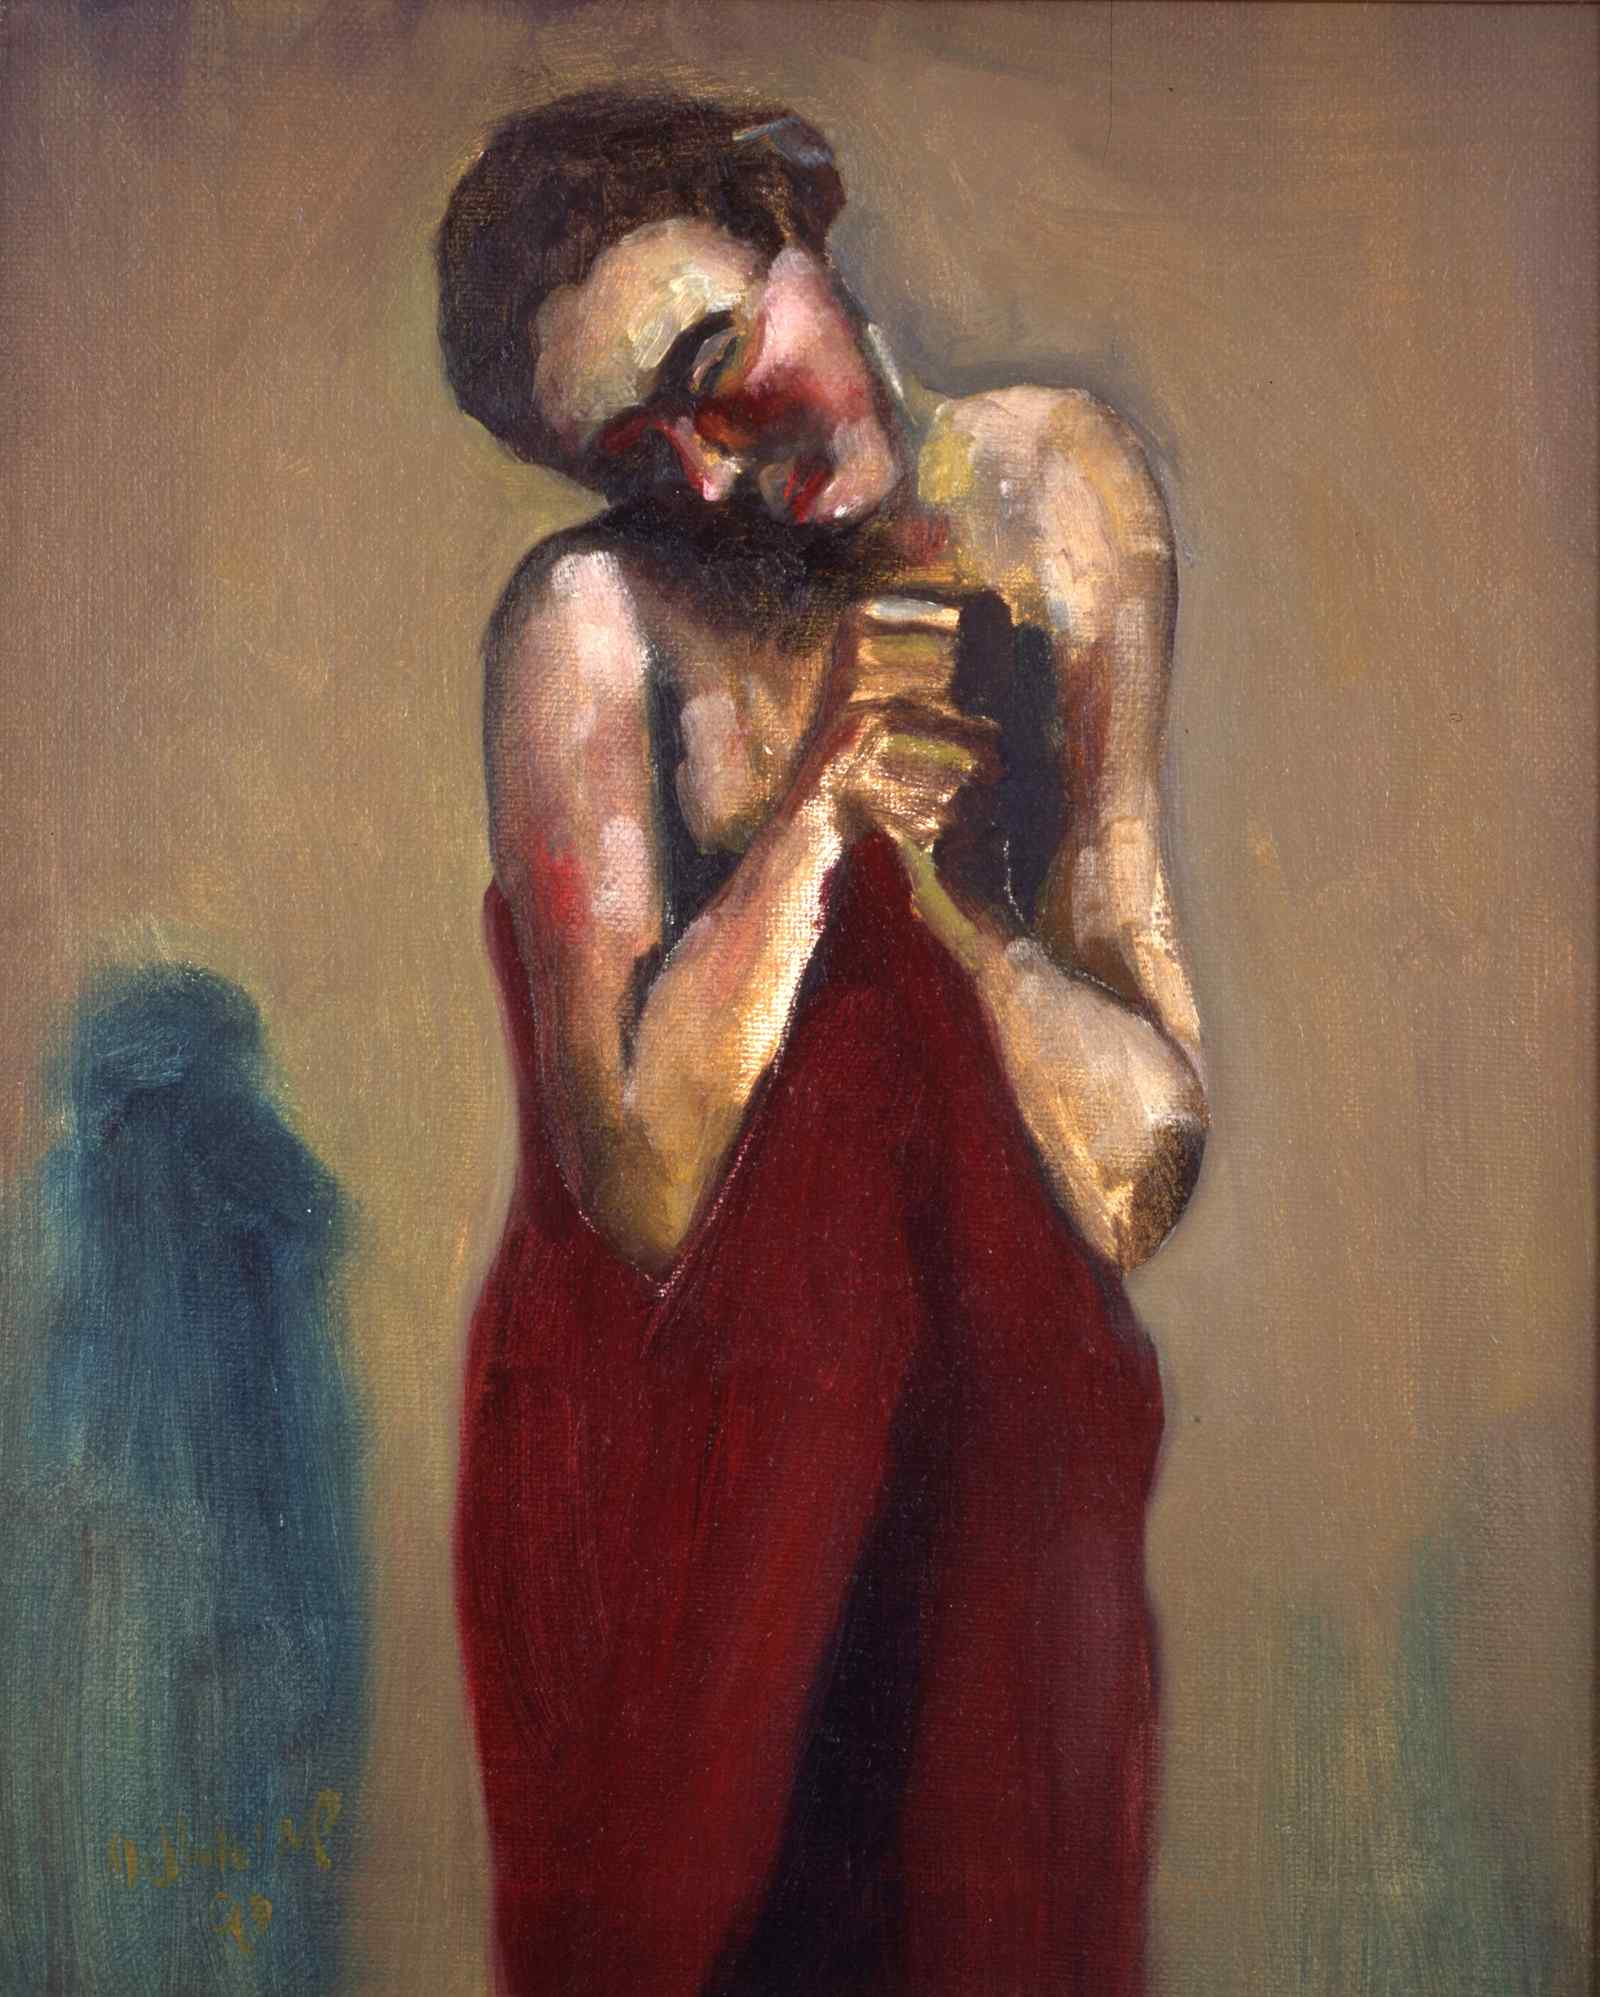 Woman Wrapped in Red